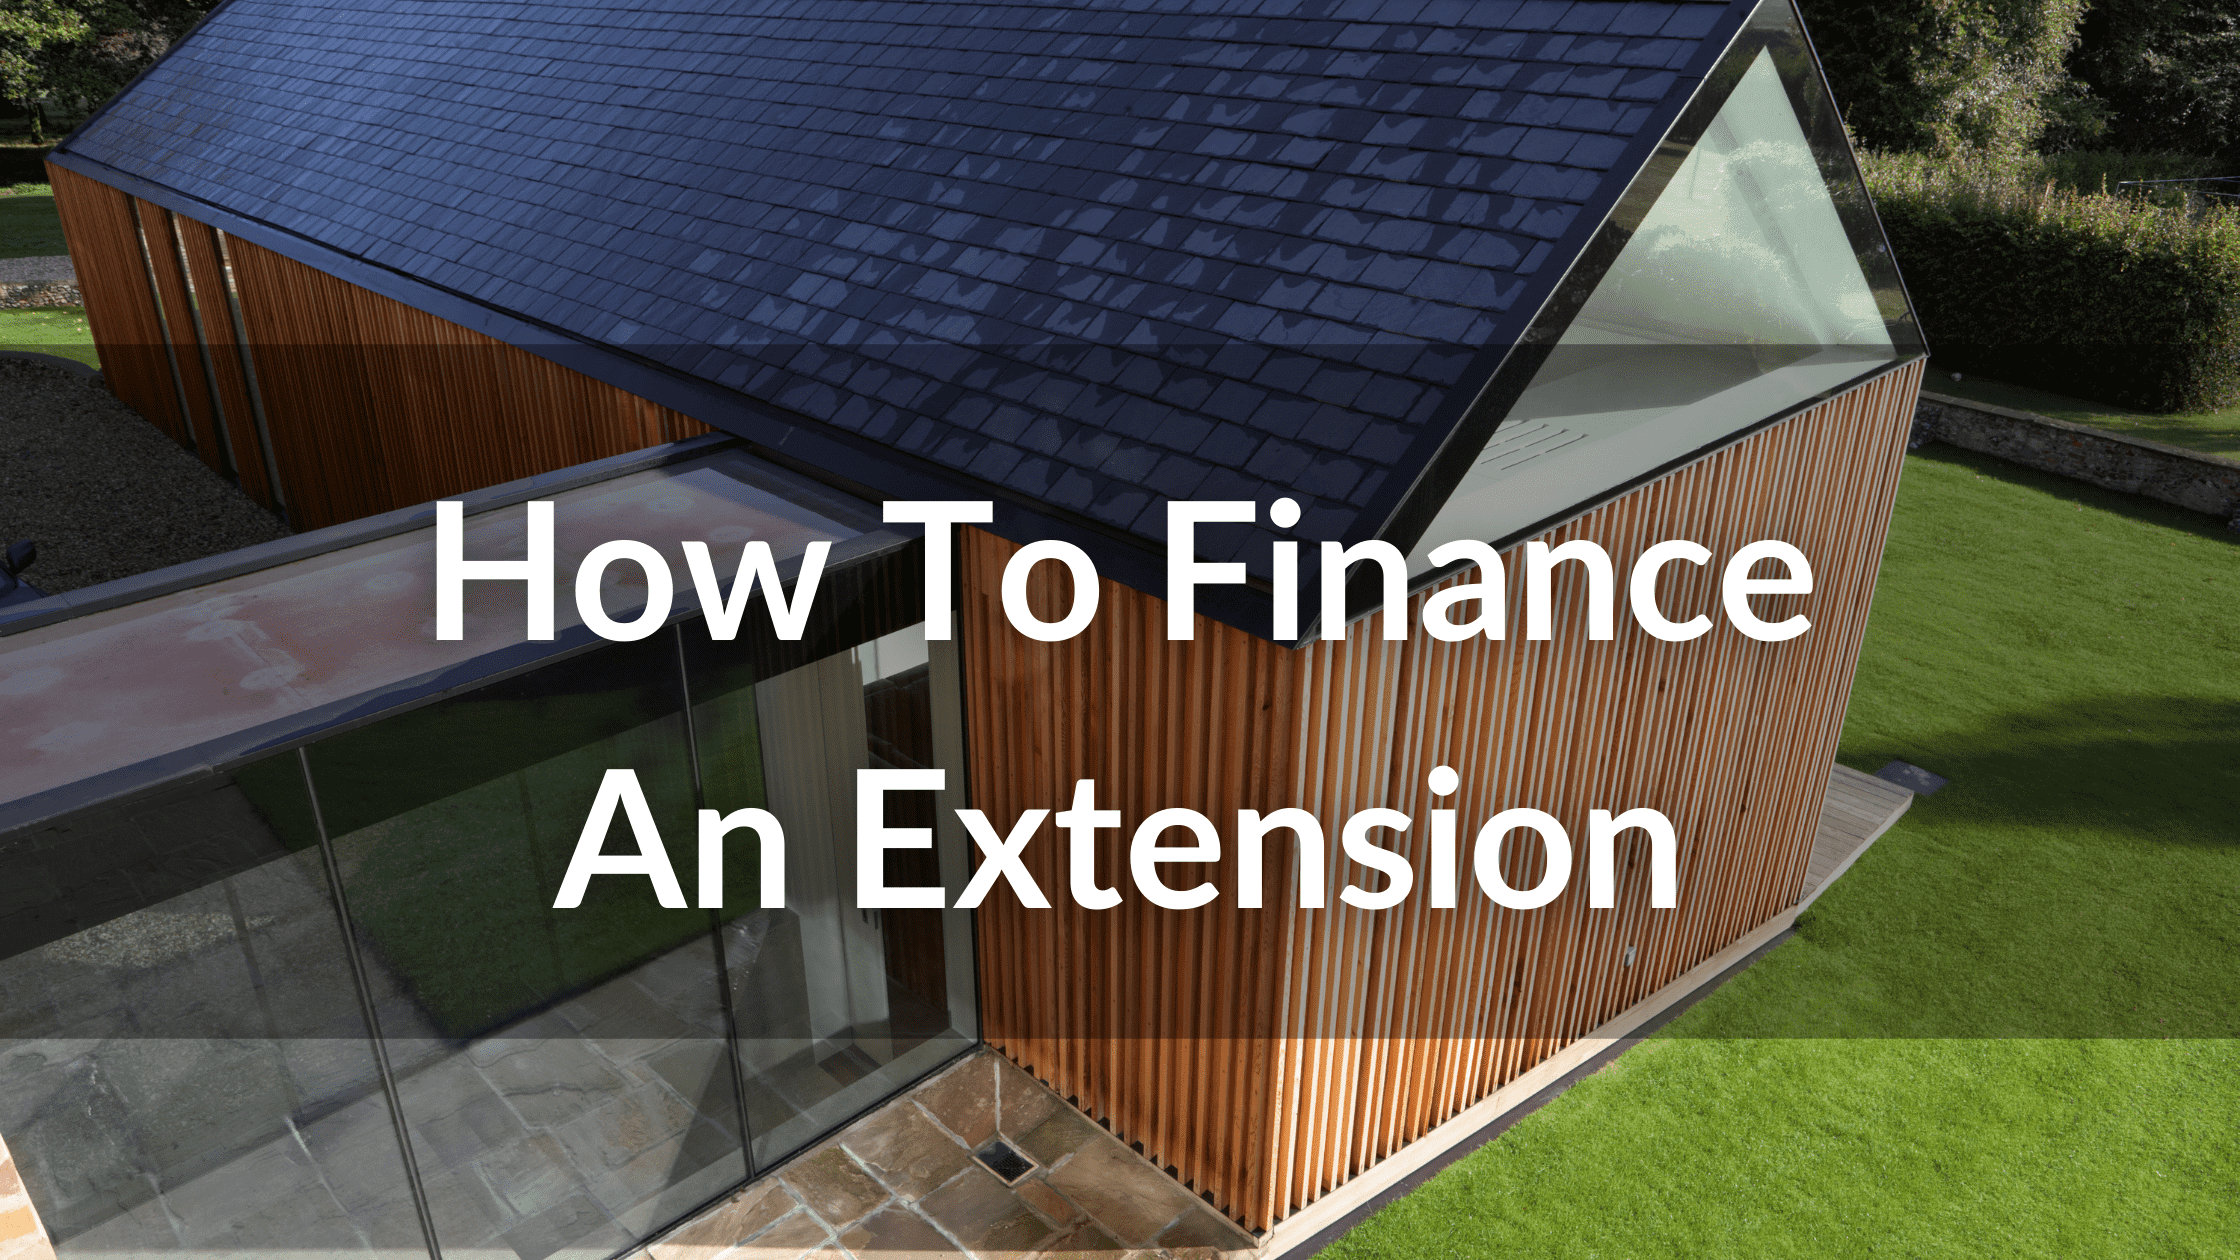 How To Finance An Extension